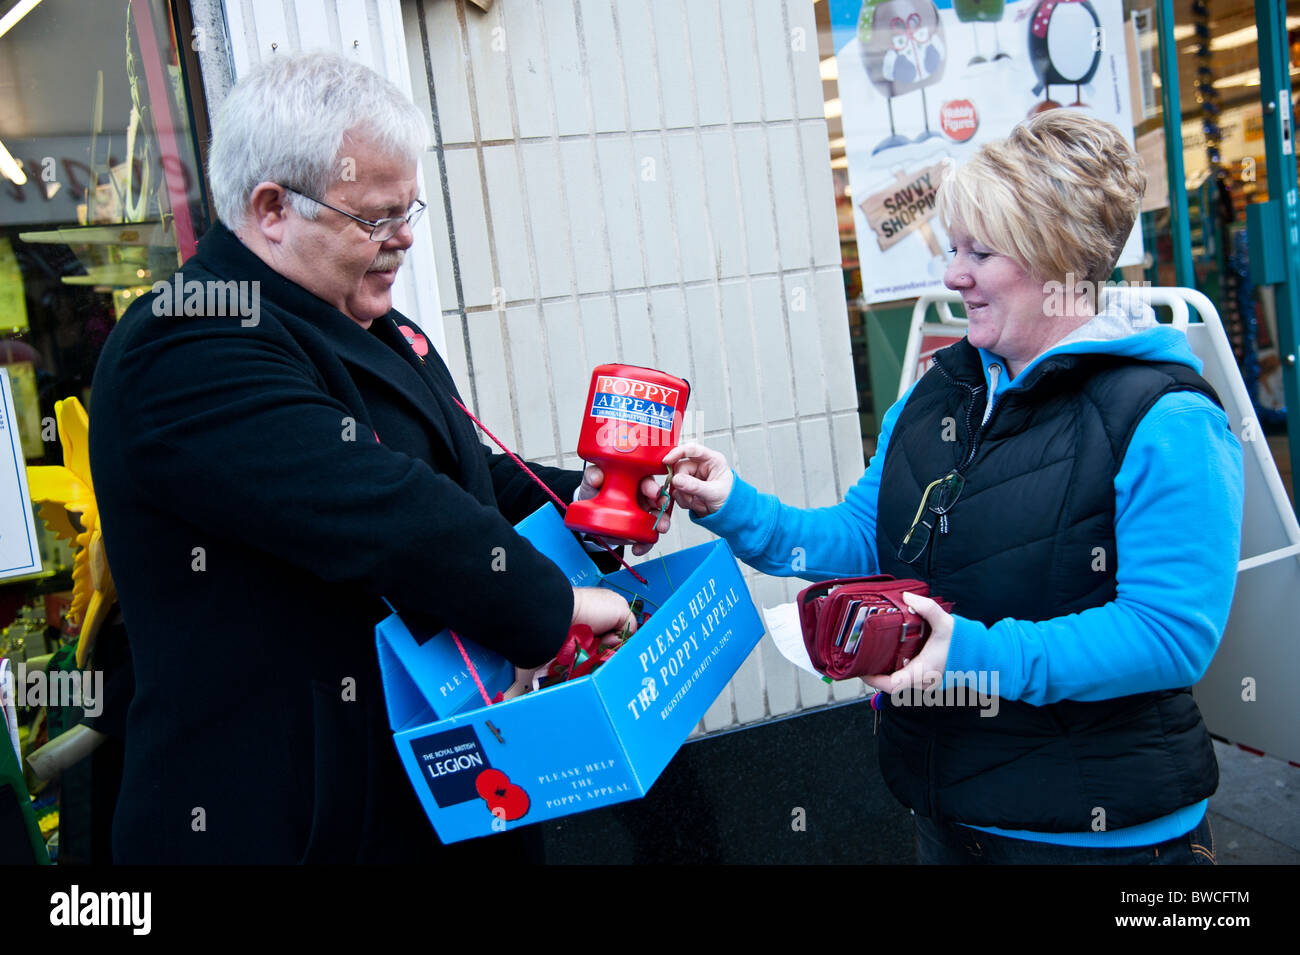 A volunteer selling Remembrance Day poppies to a woman, UK - Stock Image